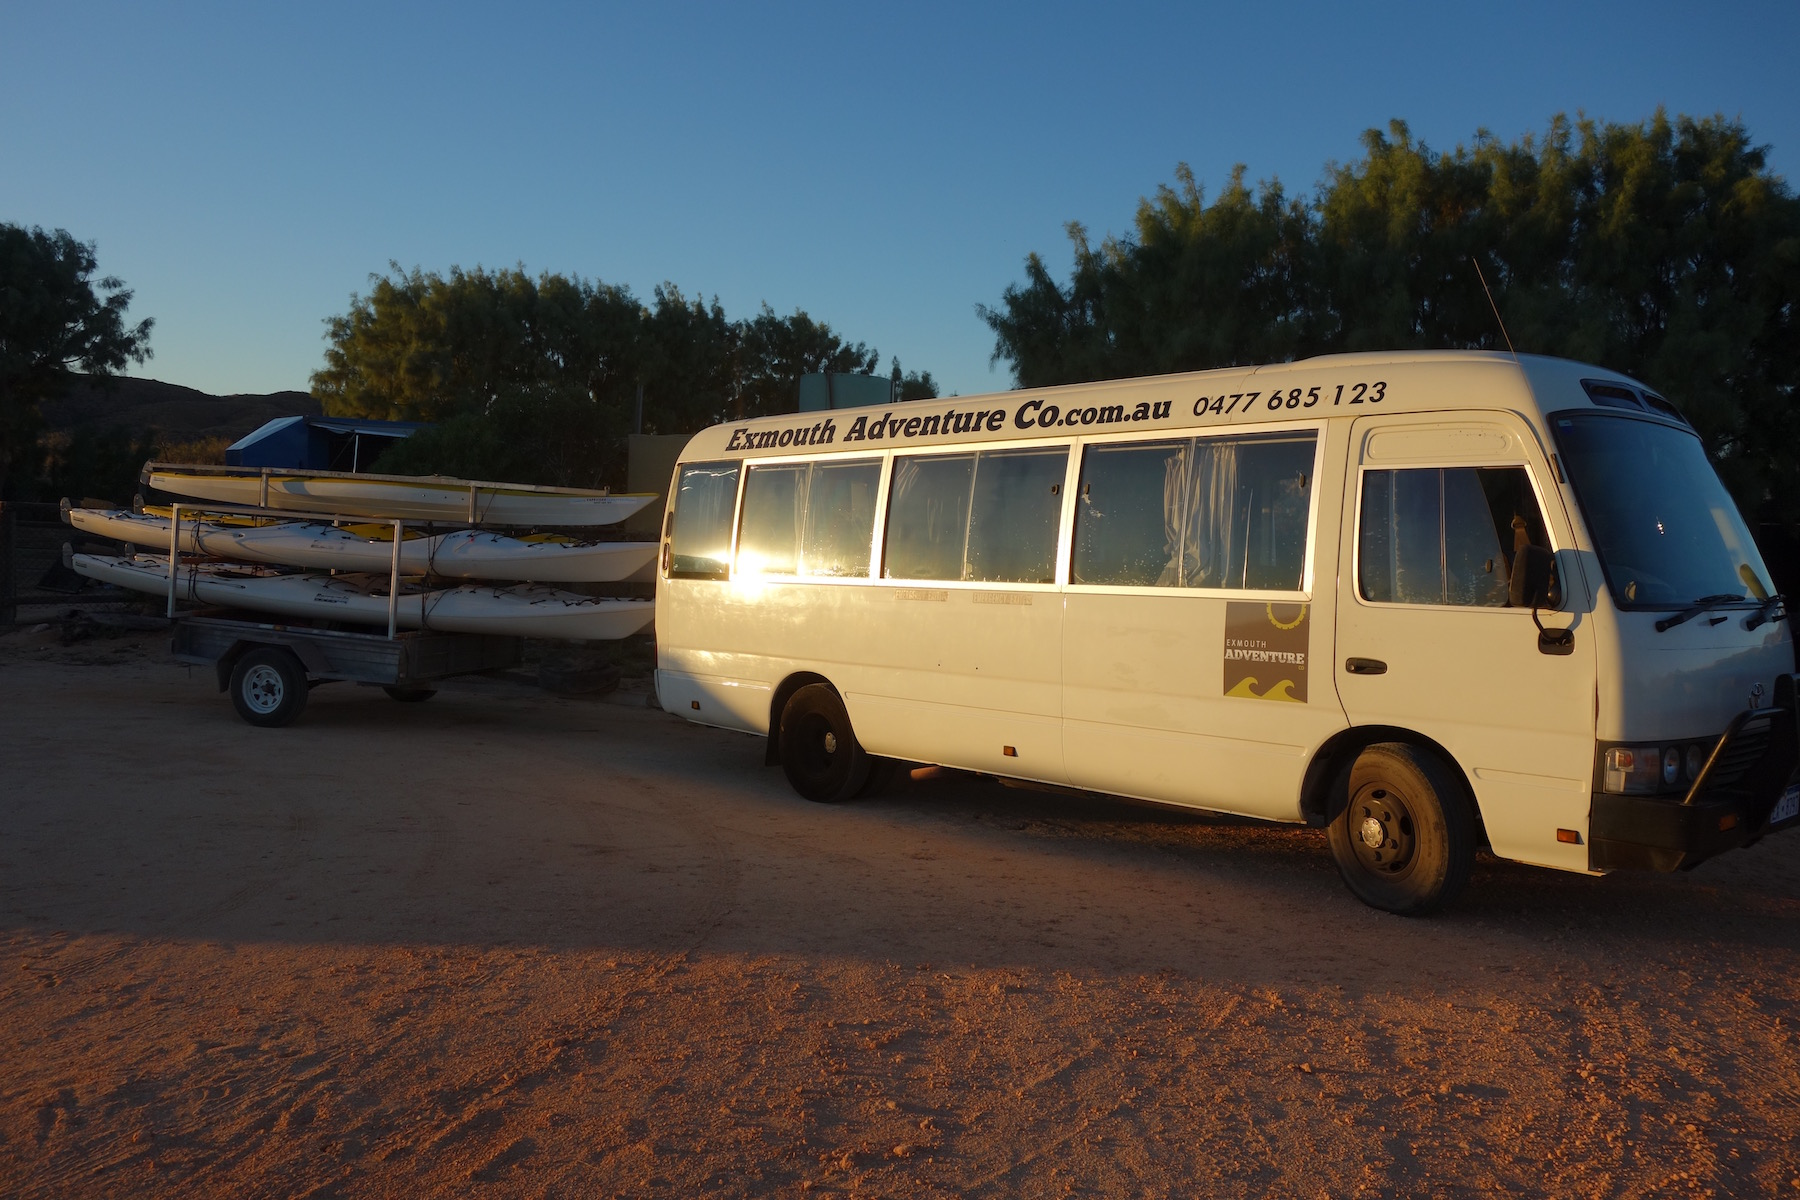 Exmouth Adventure Co, About us, Ningaloo Reef, Exmouth, Western Australia, eco tour, sea kayak, snorkel, bush walk, base camp, Arvo Cruiser, Lagoon Explorer, Big Day Out, 3 Day Reef and Beach, 5 Day Ultimate Safari, Adventure Package, Turtle Tour